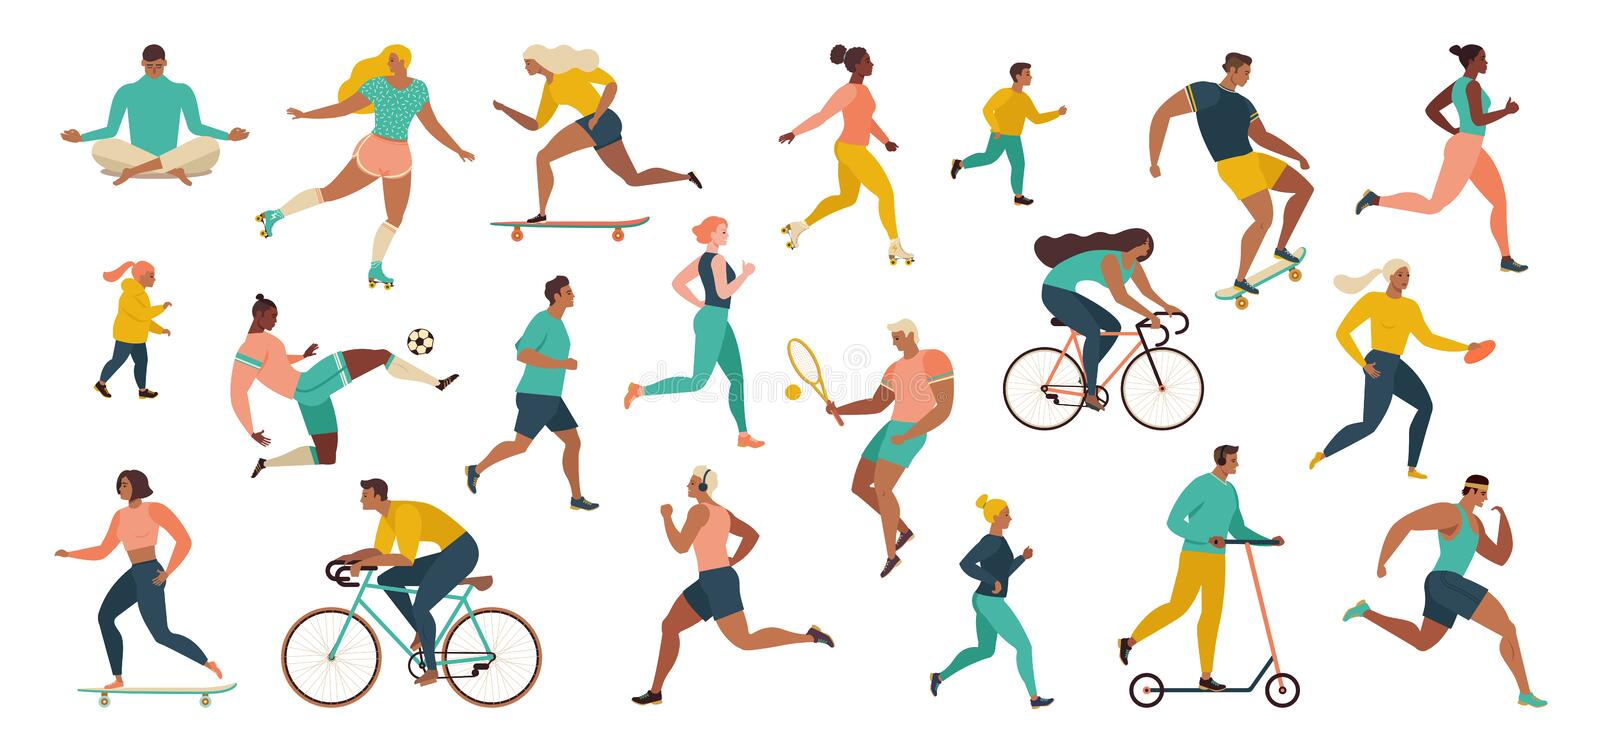 Group of people performing sports activities at park doing yoga and gymnastics exercises, jogging, riding bicycles, playing ball royalty free illustration